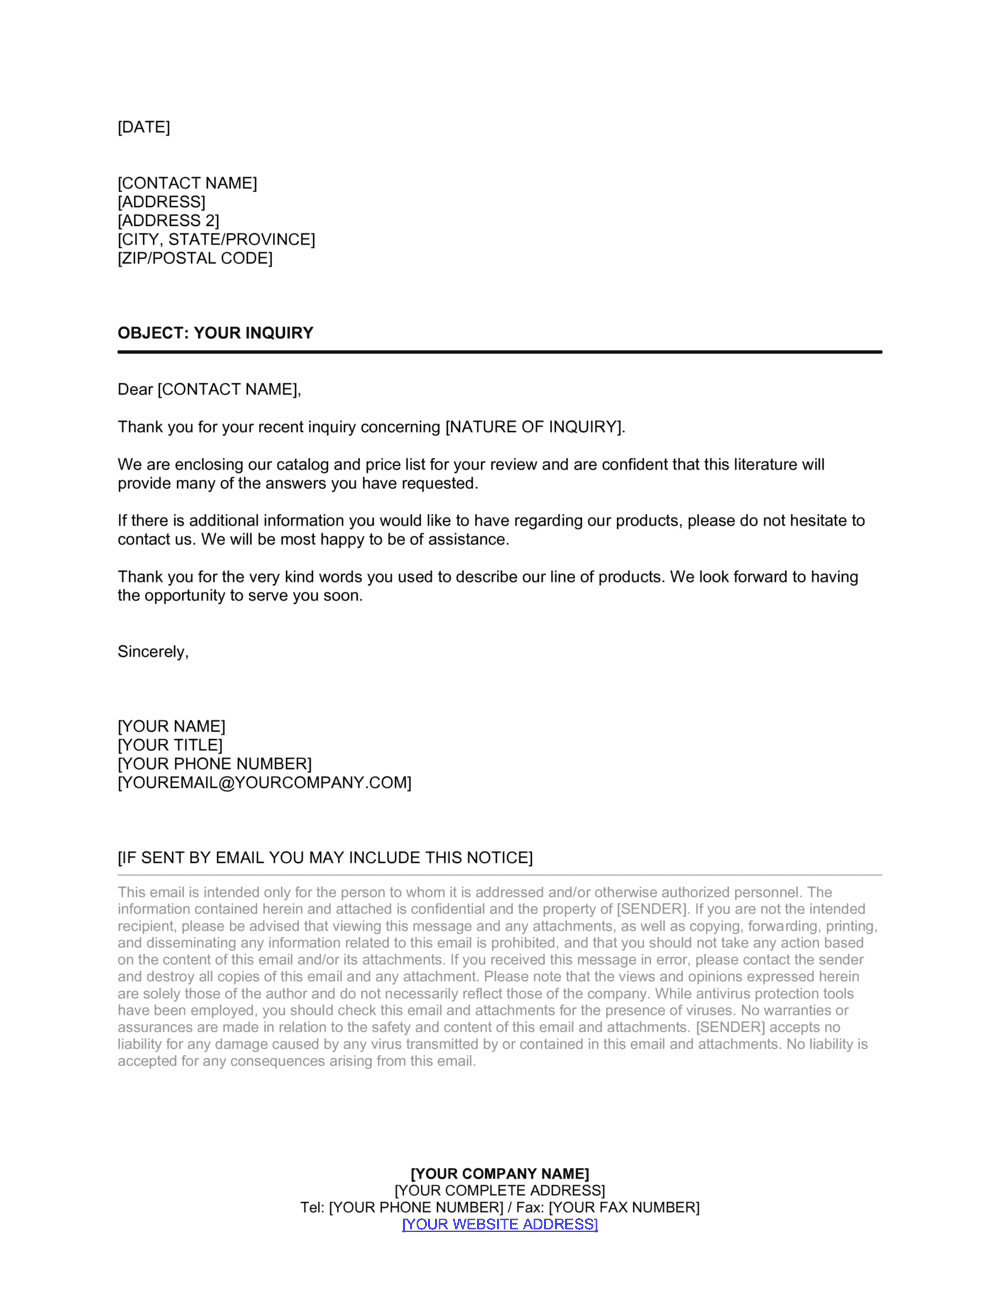 Business-in-a-Box's Standard Cover Letter in Response to Inquiry Template